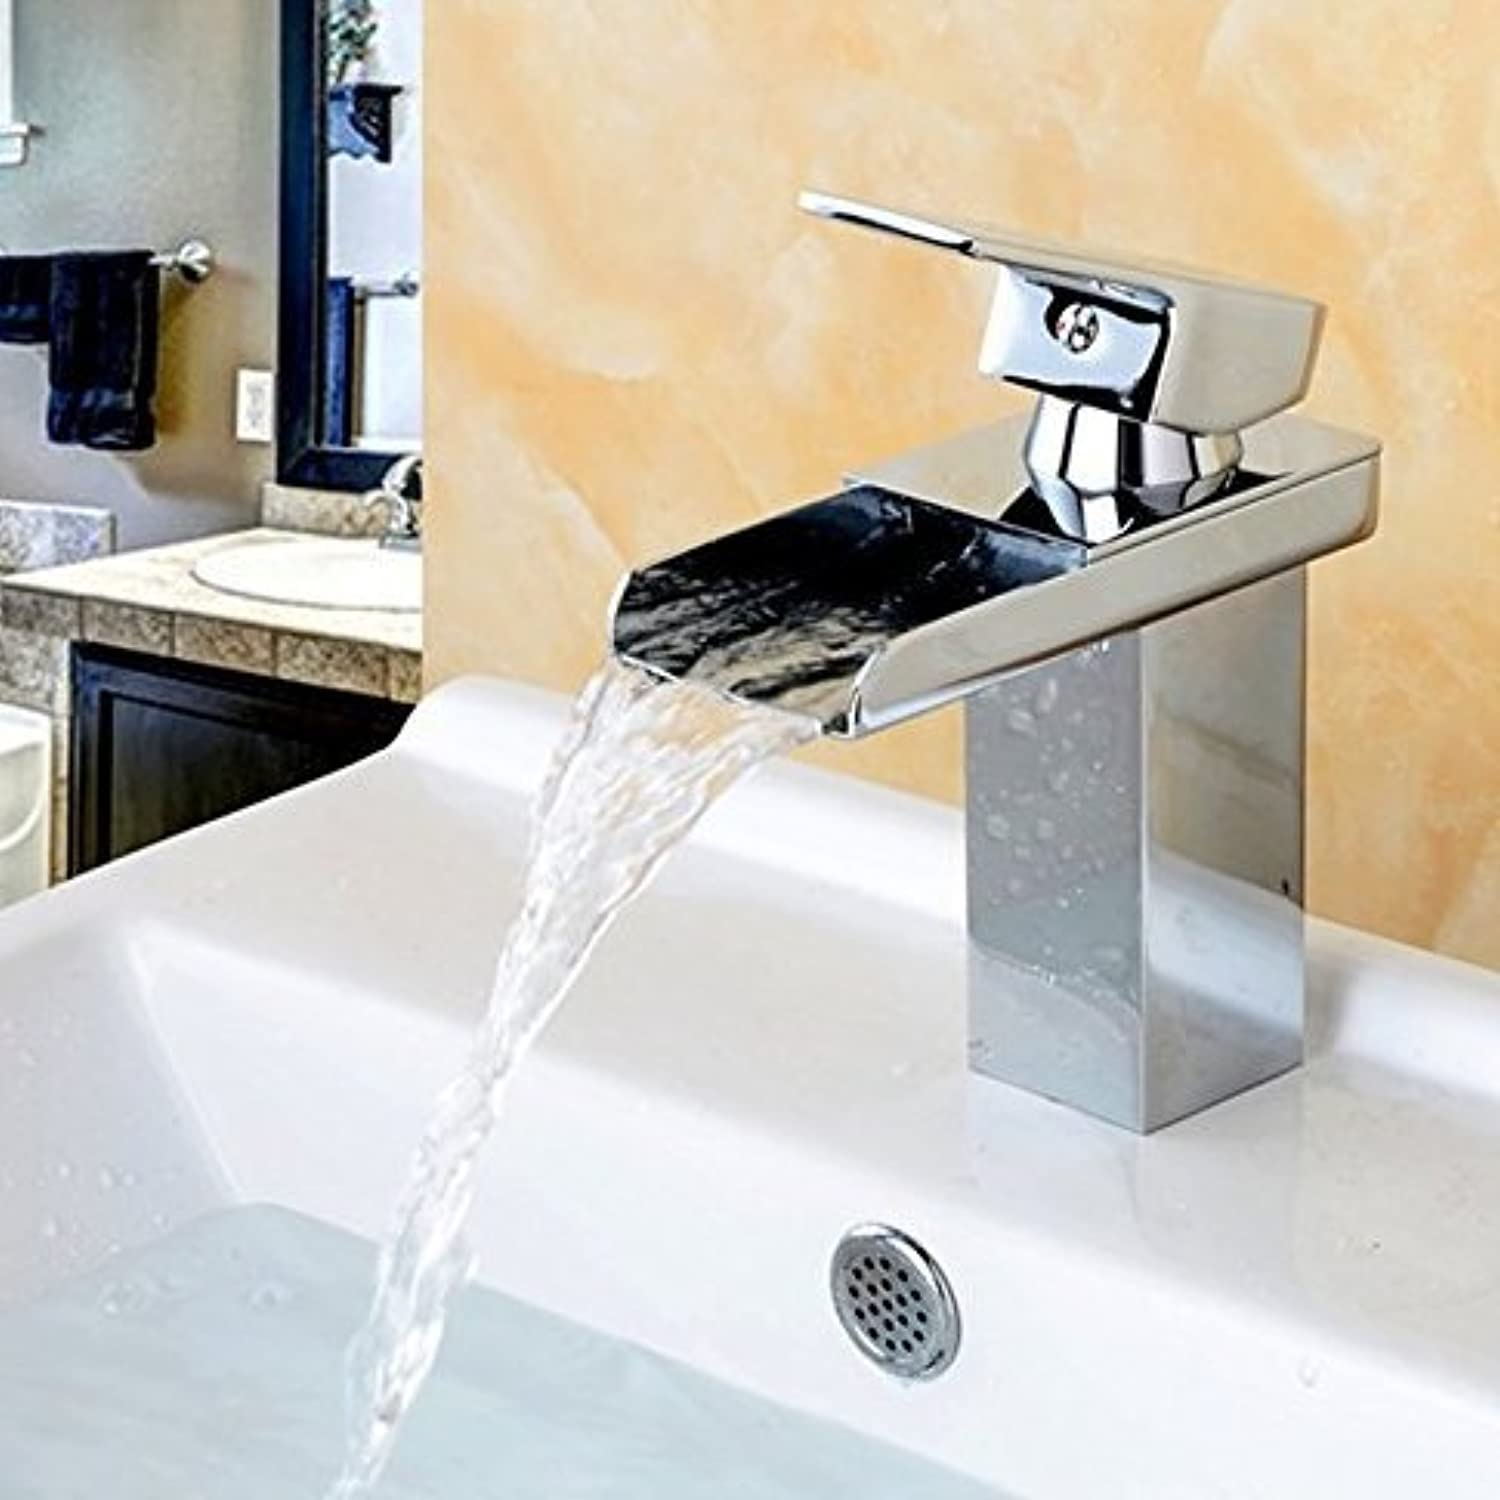 Deck Mount Waterfall Bathroom Faucet, Vanity Vessel Sinks Mixer Tap Cold and Hot Water Tap Chrome Finish